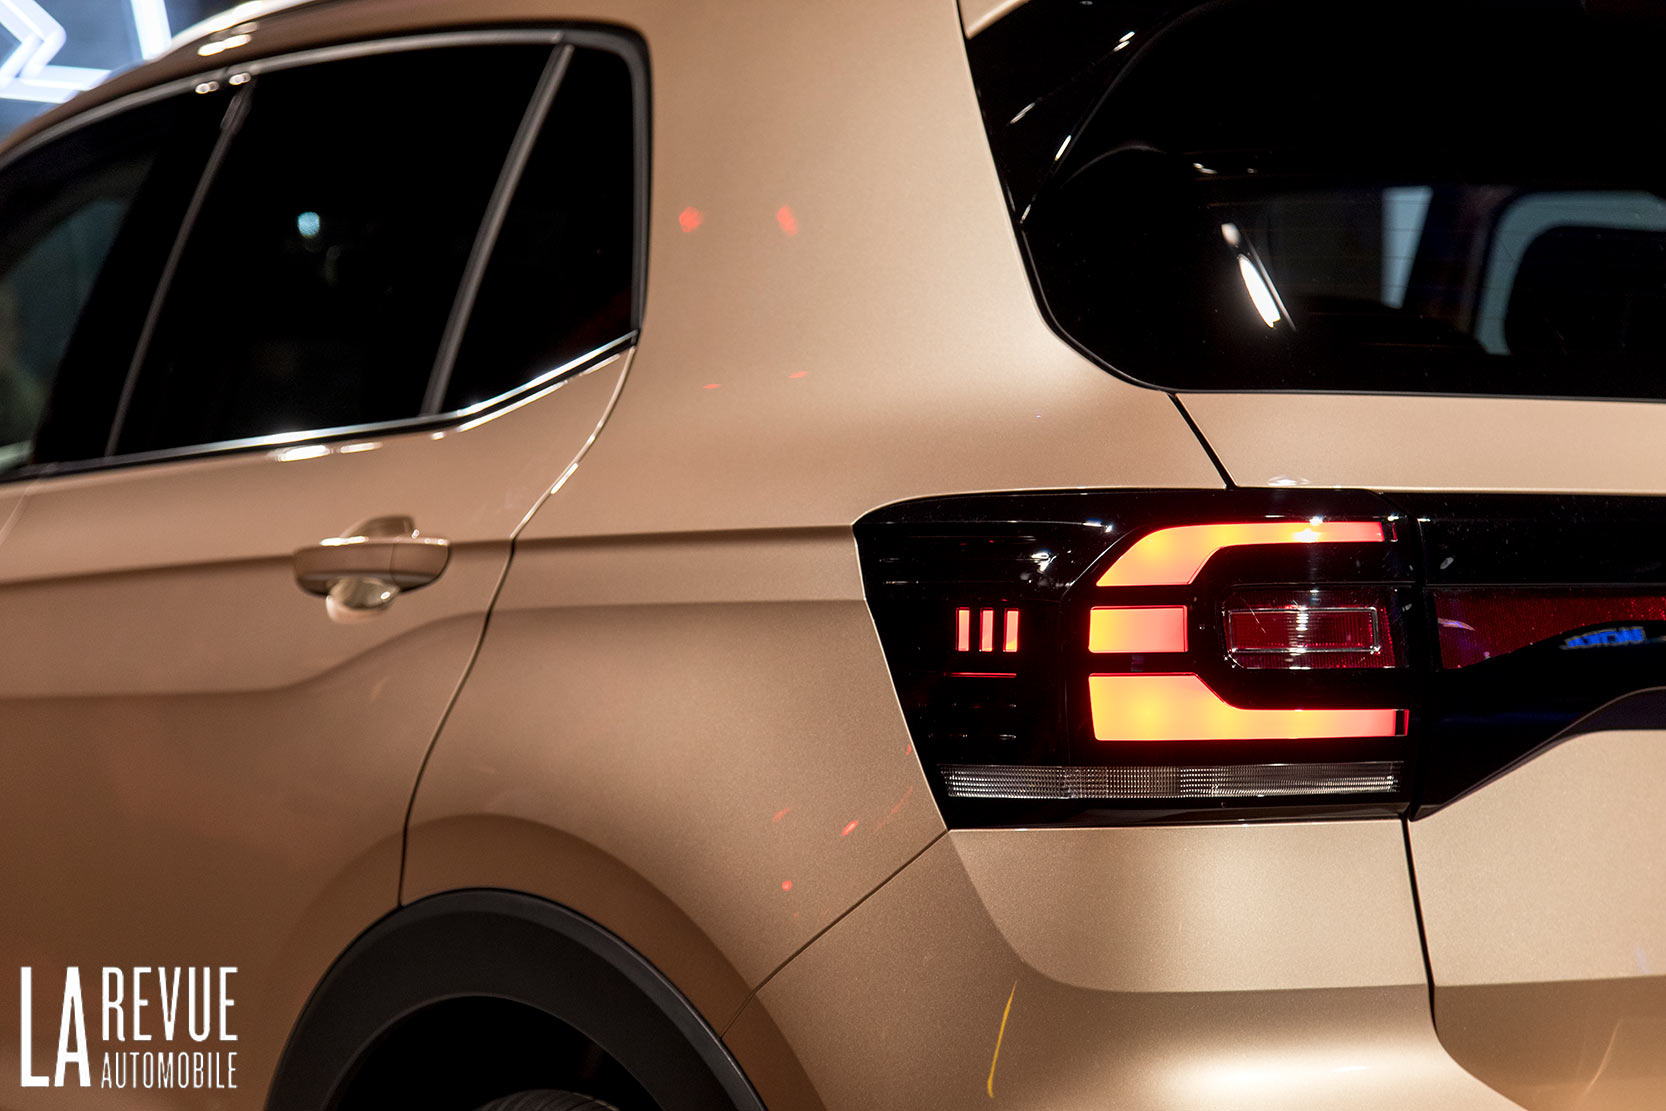 Exterieur_Volkswagen-T-Cross-Reveal_17